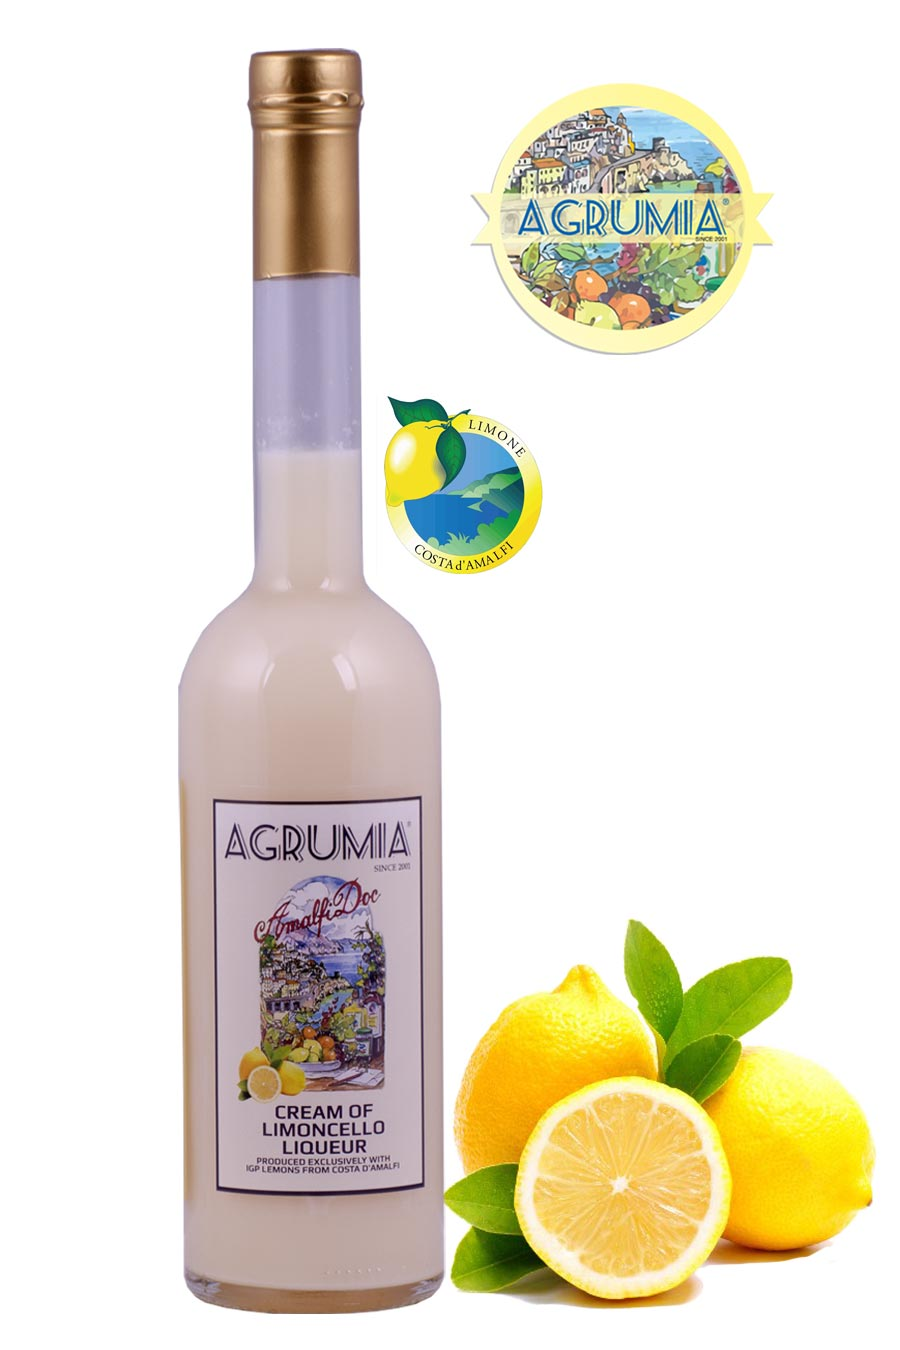 Agrumia Cream of Limoncello Liqueur 50cl